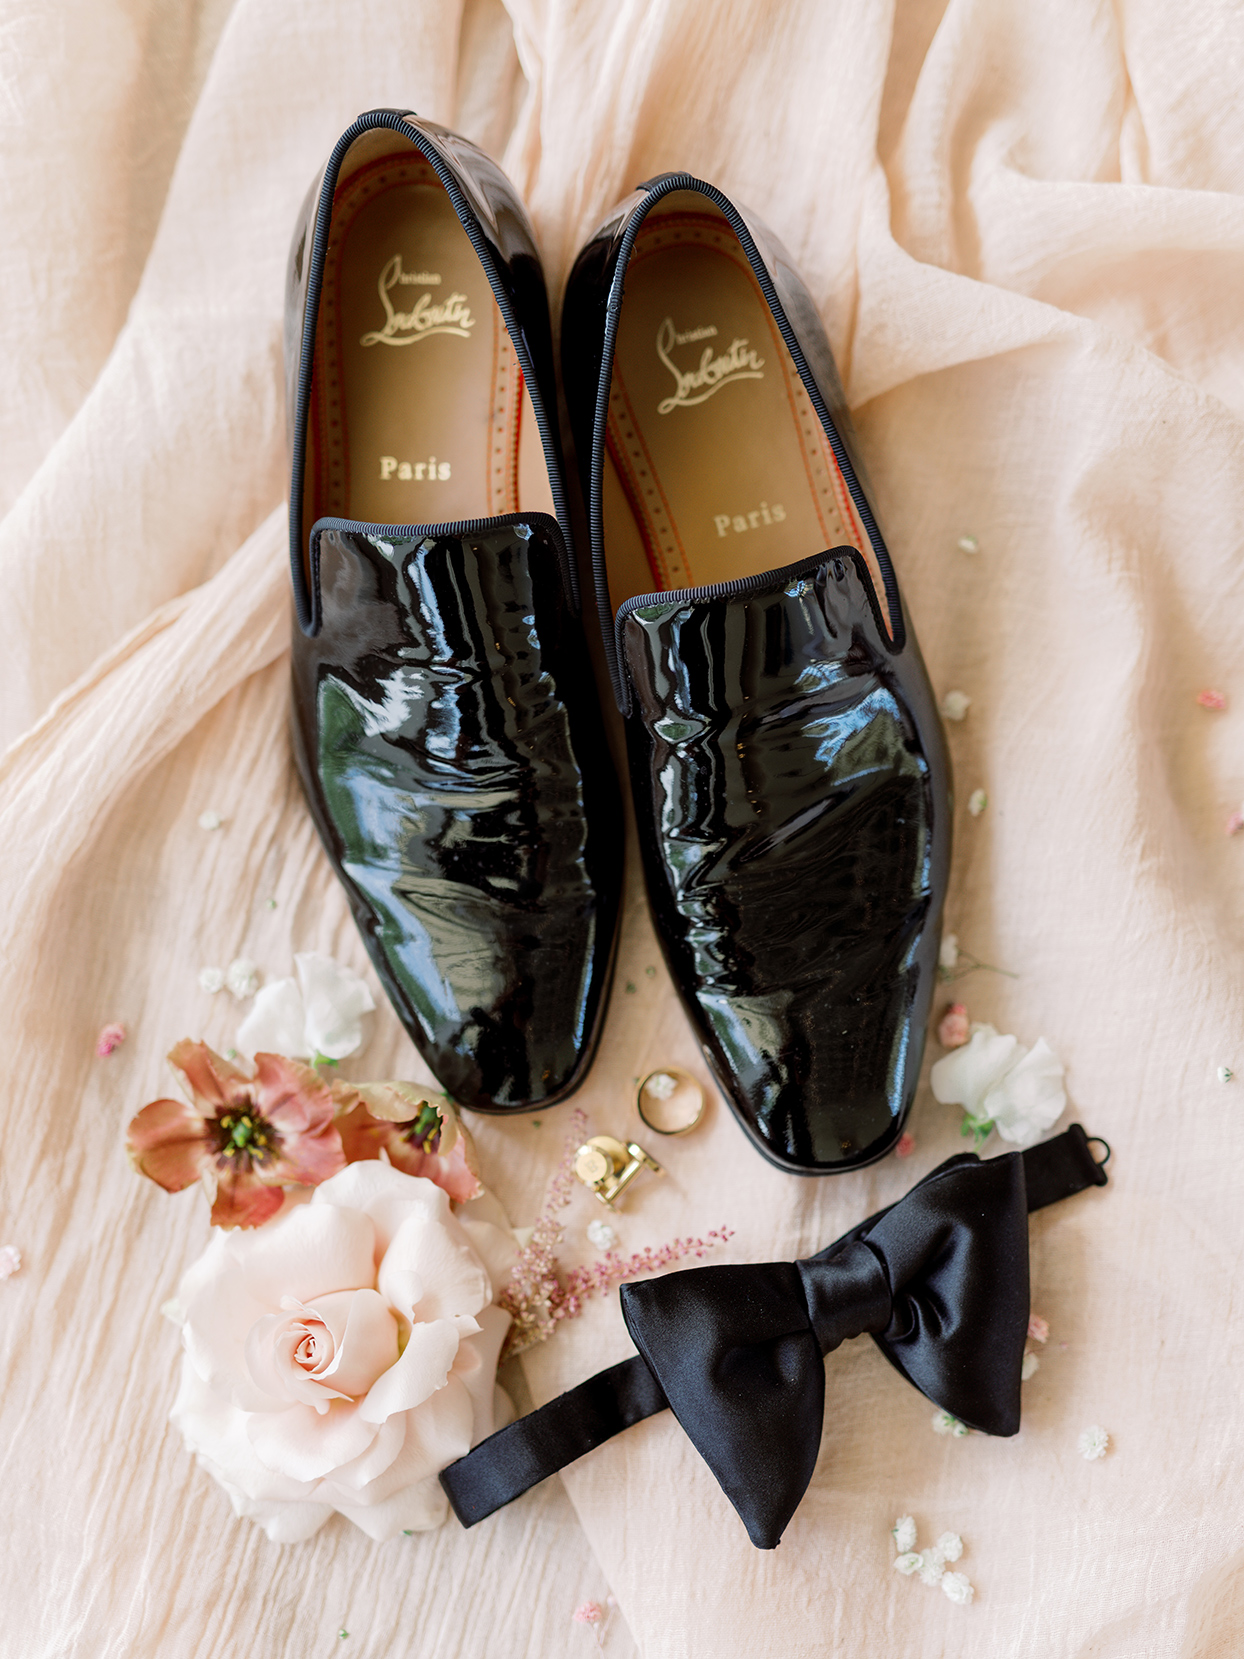 groom's black shoes and bowtie and gold cufflinks wedding accessories